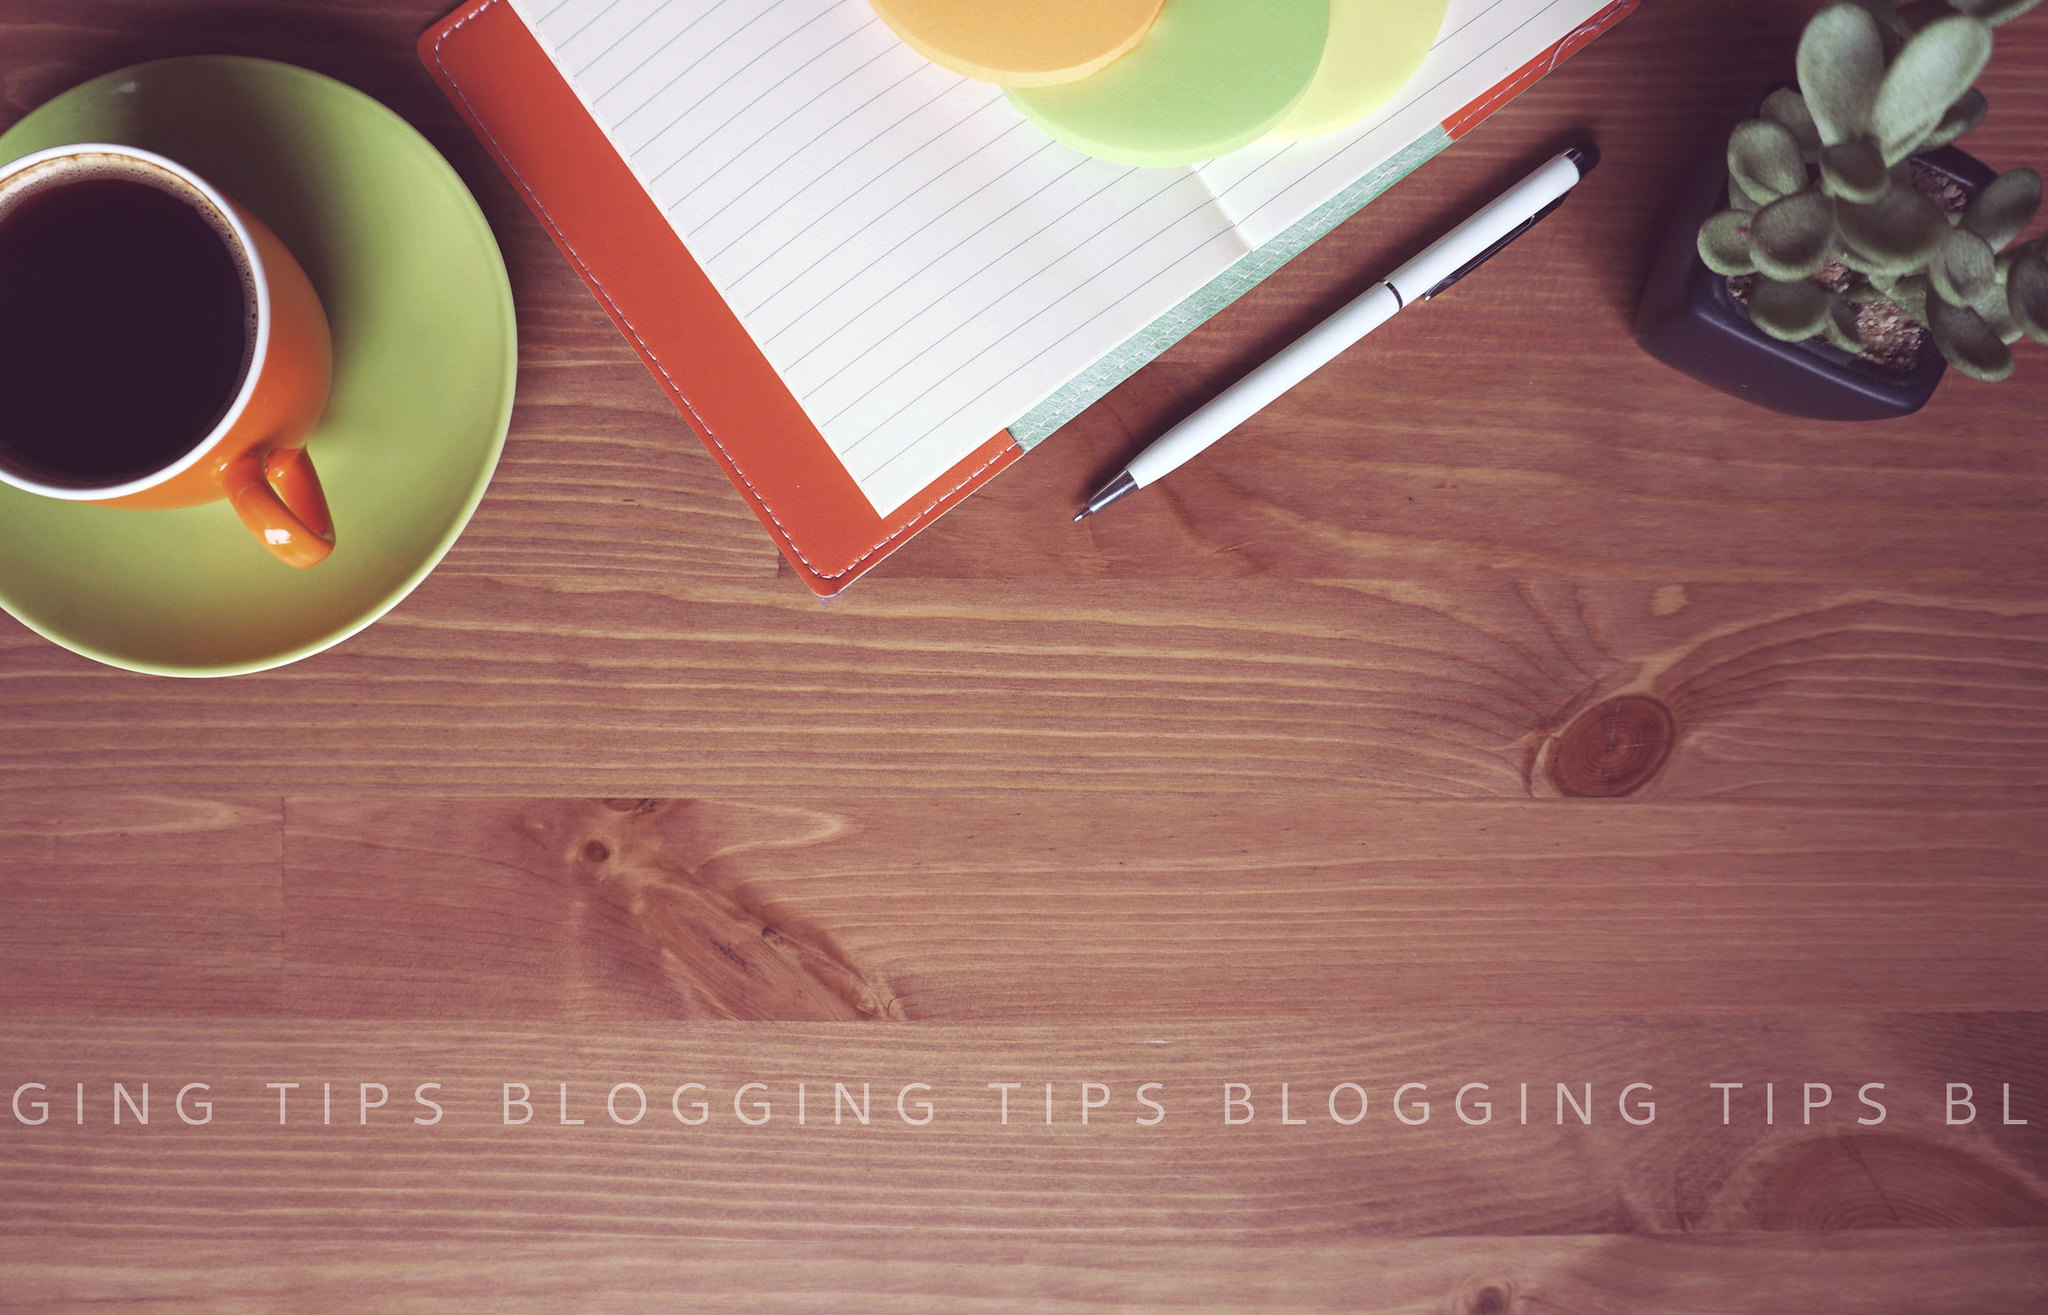 Blogging Tips | How to Make an Unsuitable Sponsored Post Work in Your Favour